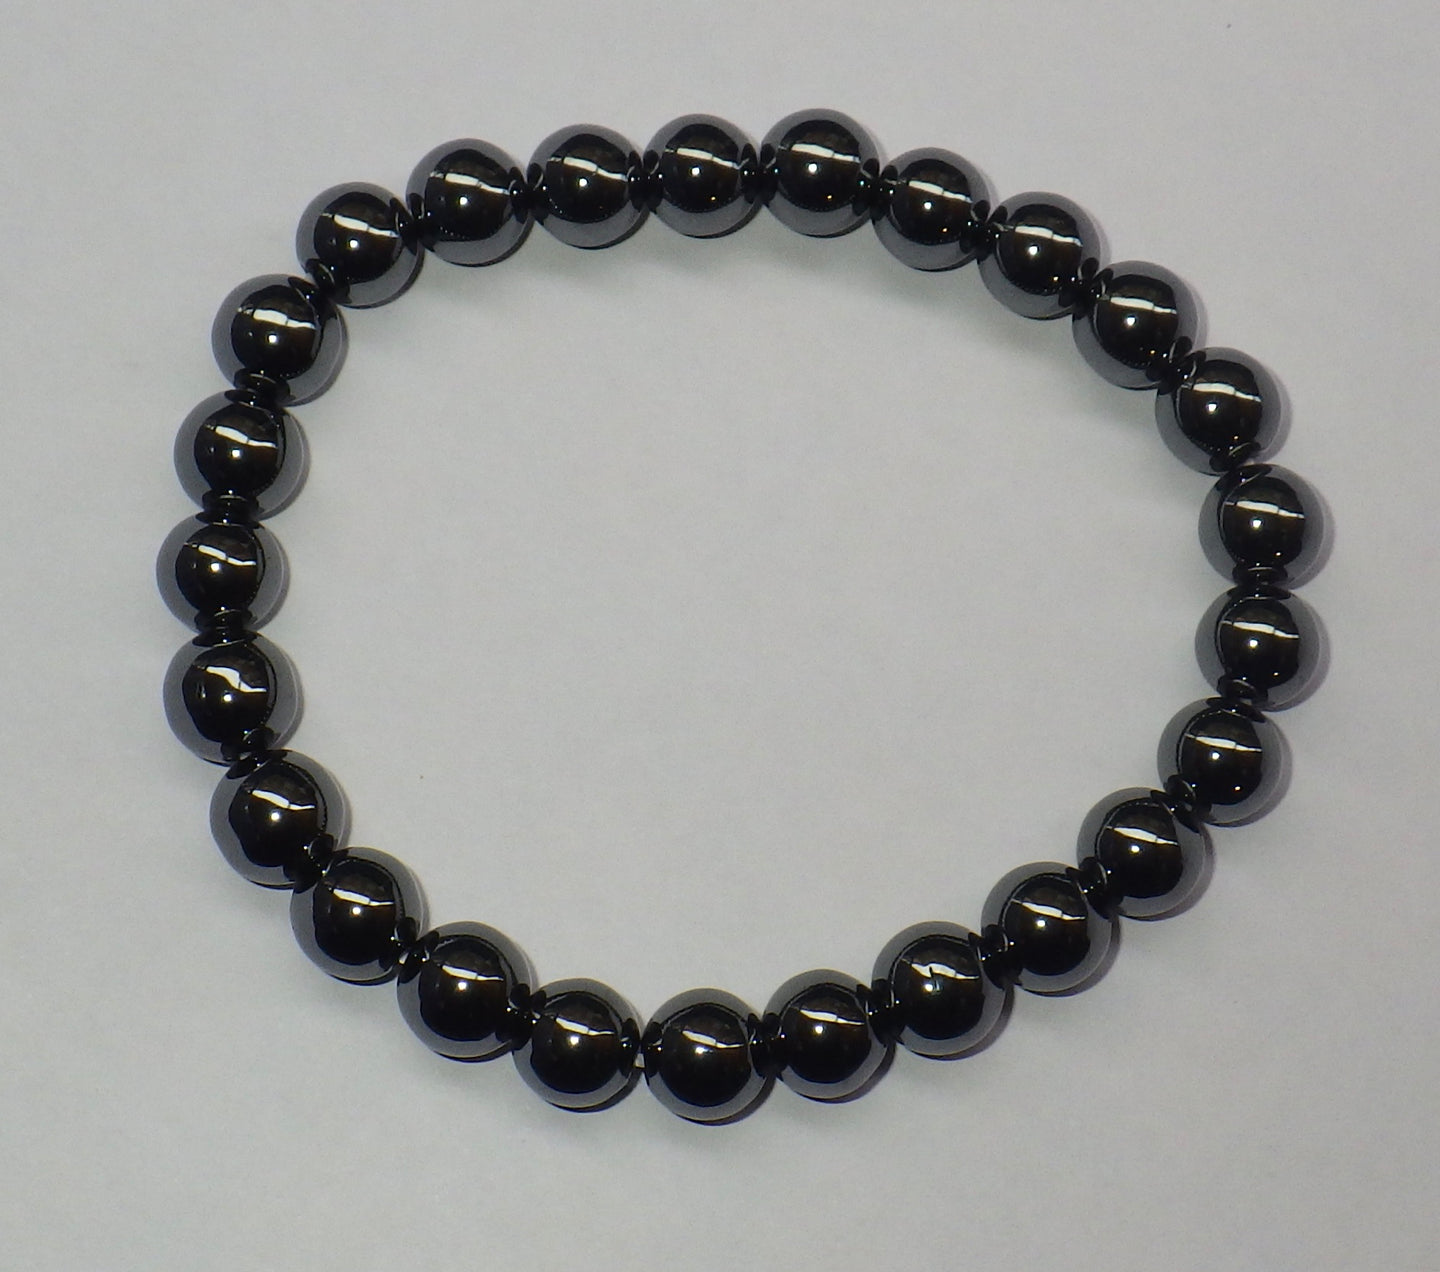 Hematite Gemstone Bracelet | Earthfound.co.uk